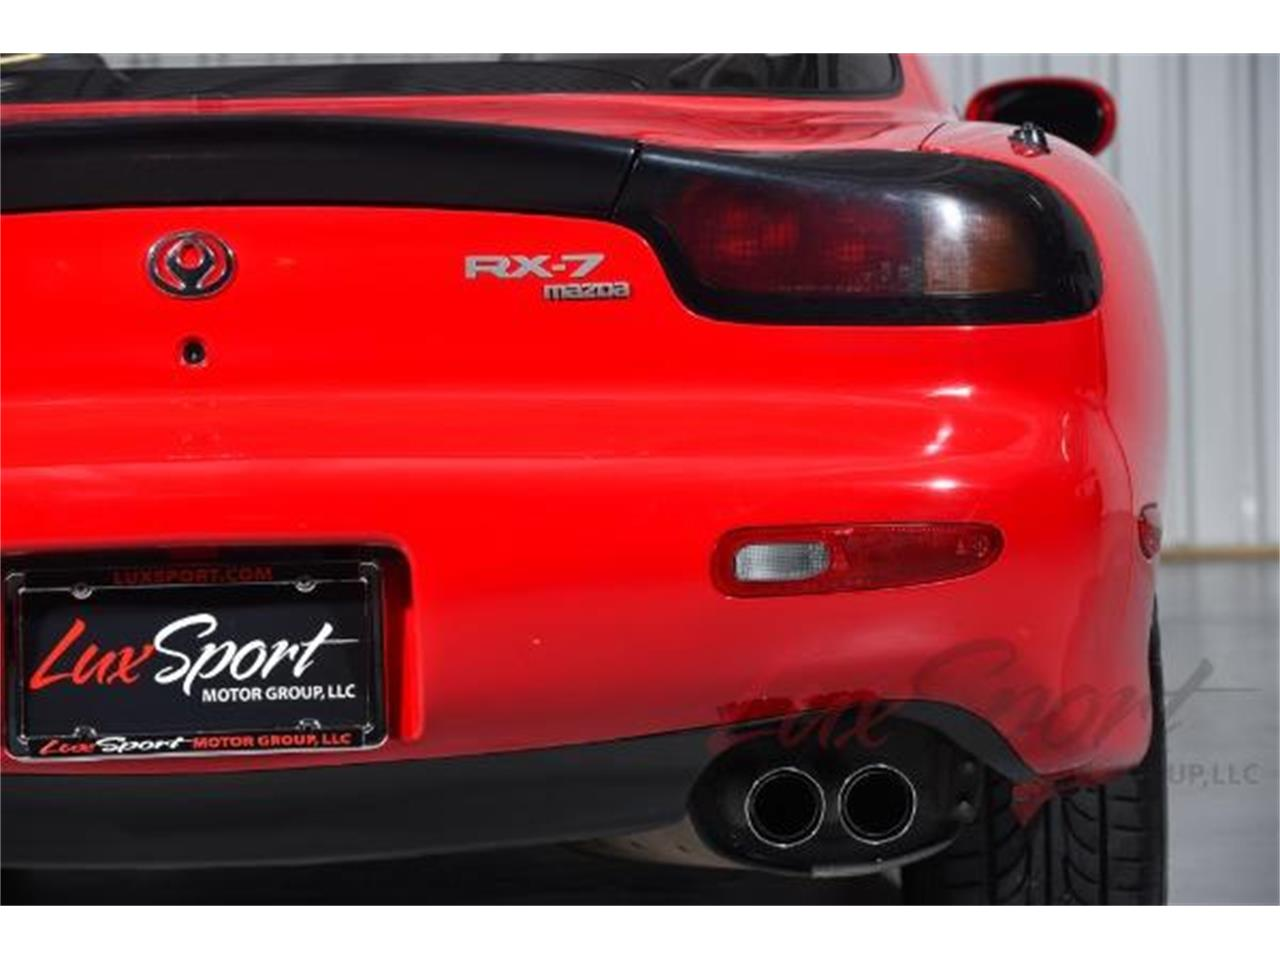 Large Picture of 1993 Mazda RX-7 - $34,995.00 Offered by LuxSport Motor Group, LLC - MO02